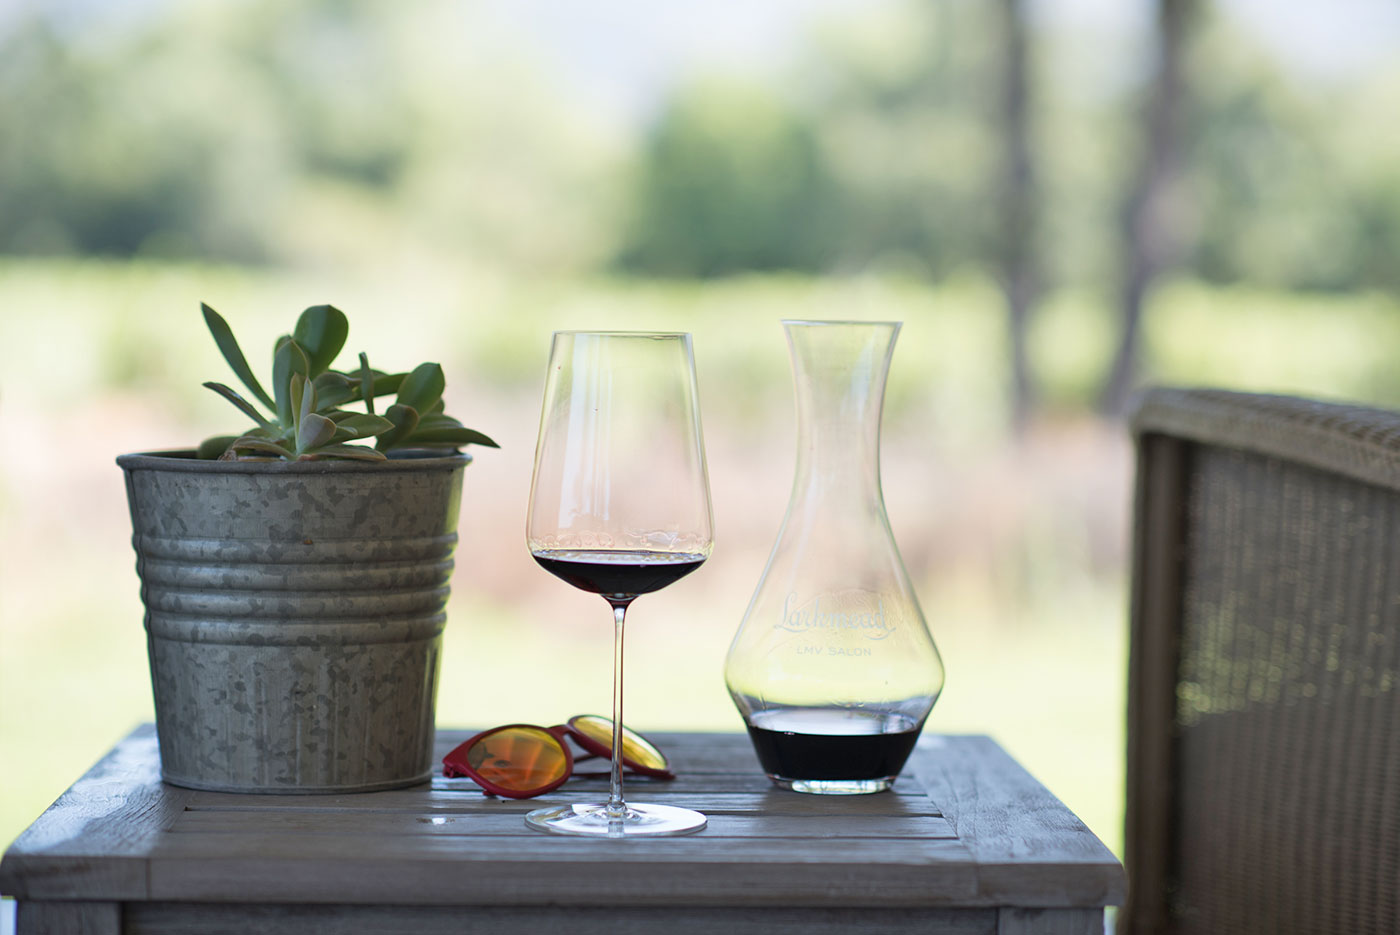 A glass of wine, decanter, sunglasses and a potted succulent sit on a table on Lark Room porch